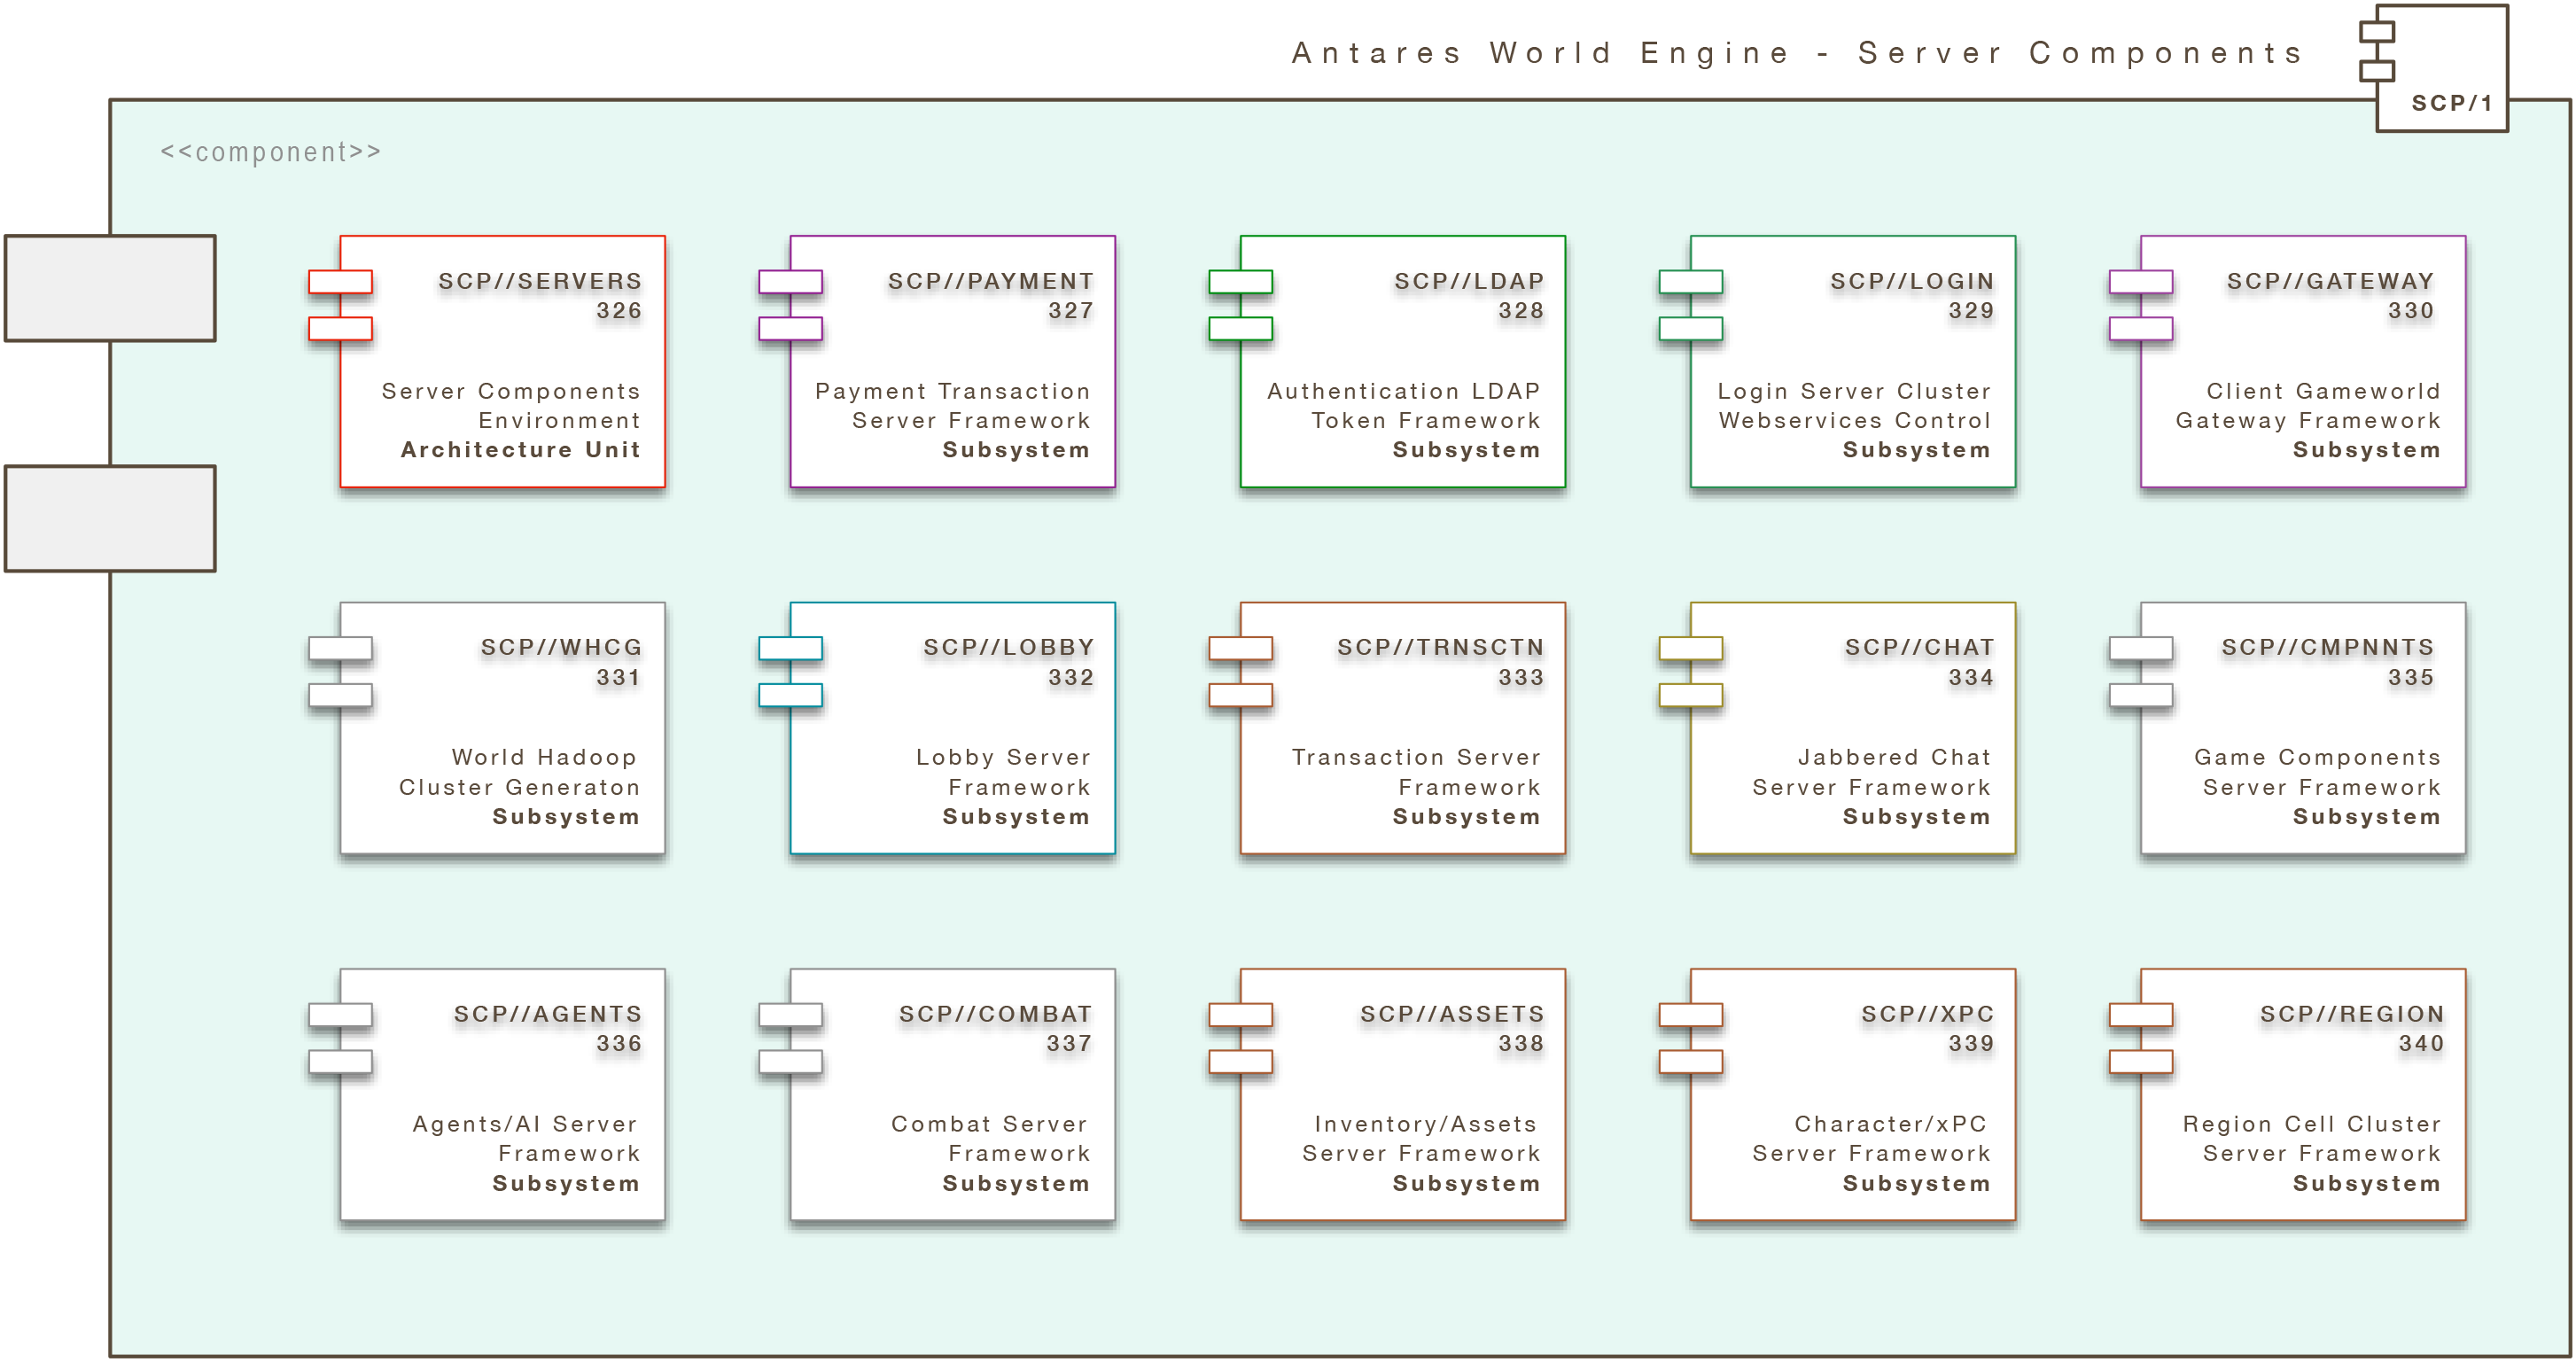 Antares World Engine (Core): Server Components (AWE/SCP)